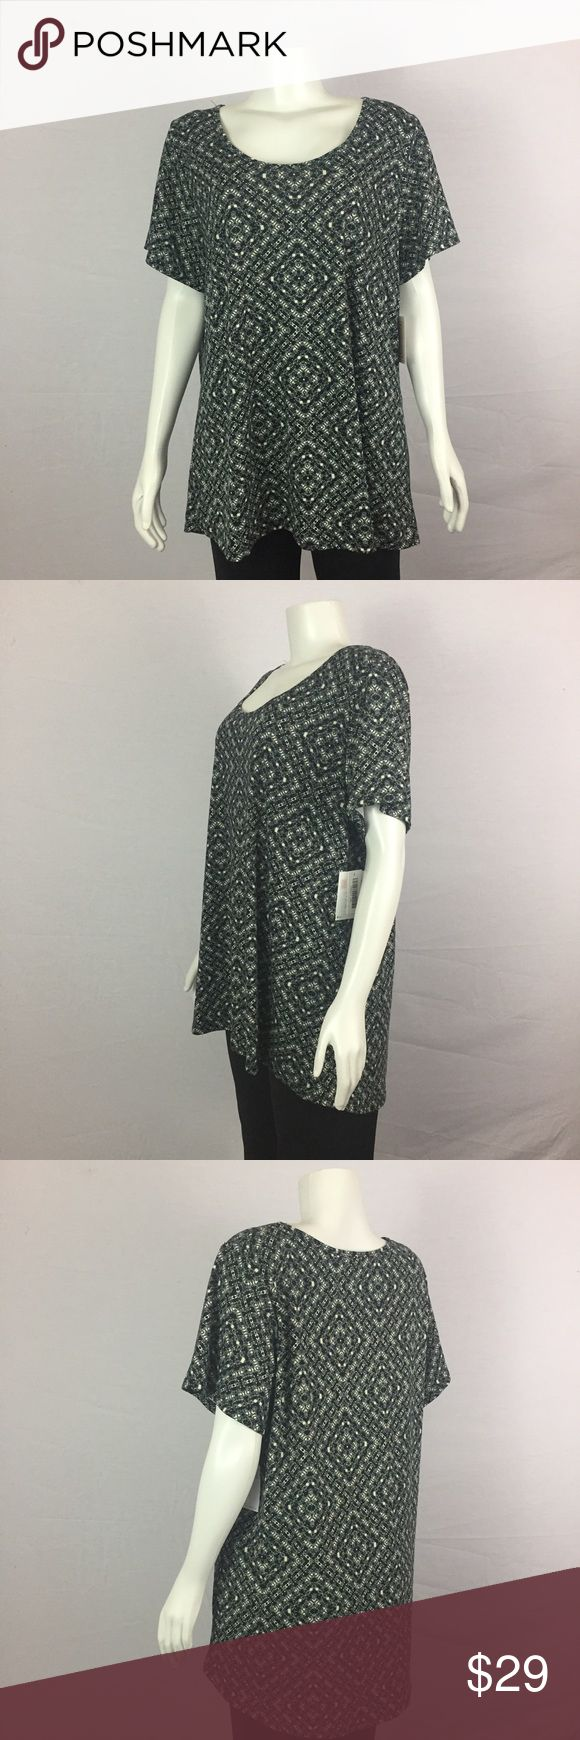 NEW LulaRoe Black White Short Sleeve Top 2x Plus ***All best reasonable offers accepted!***